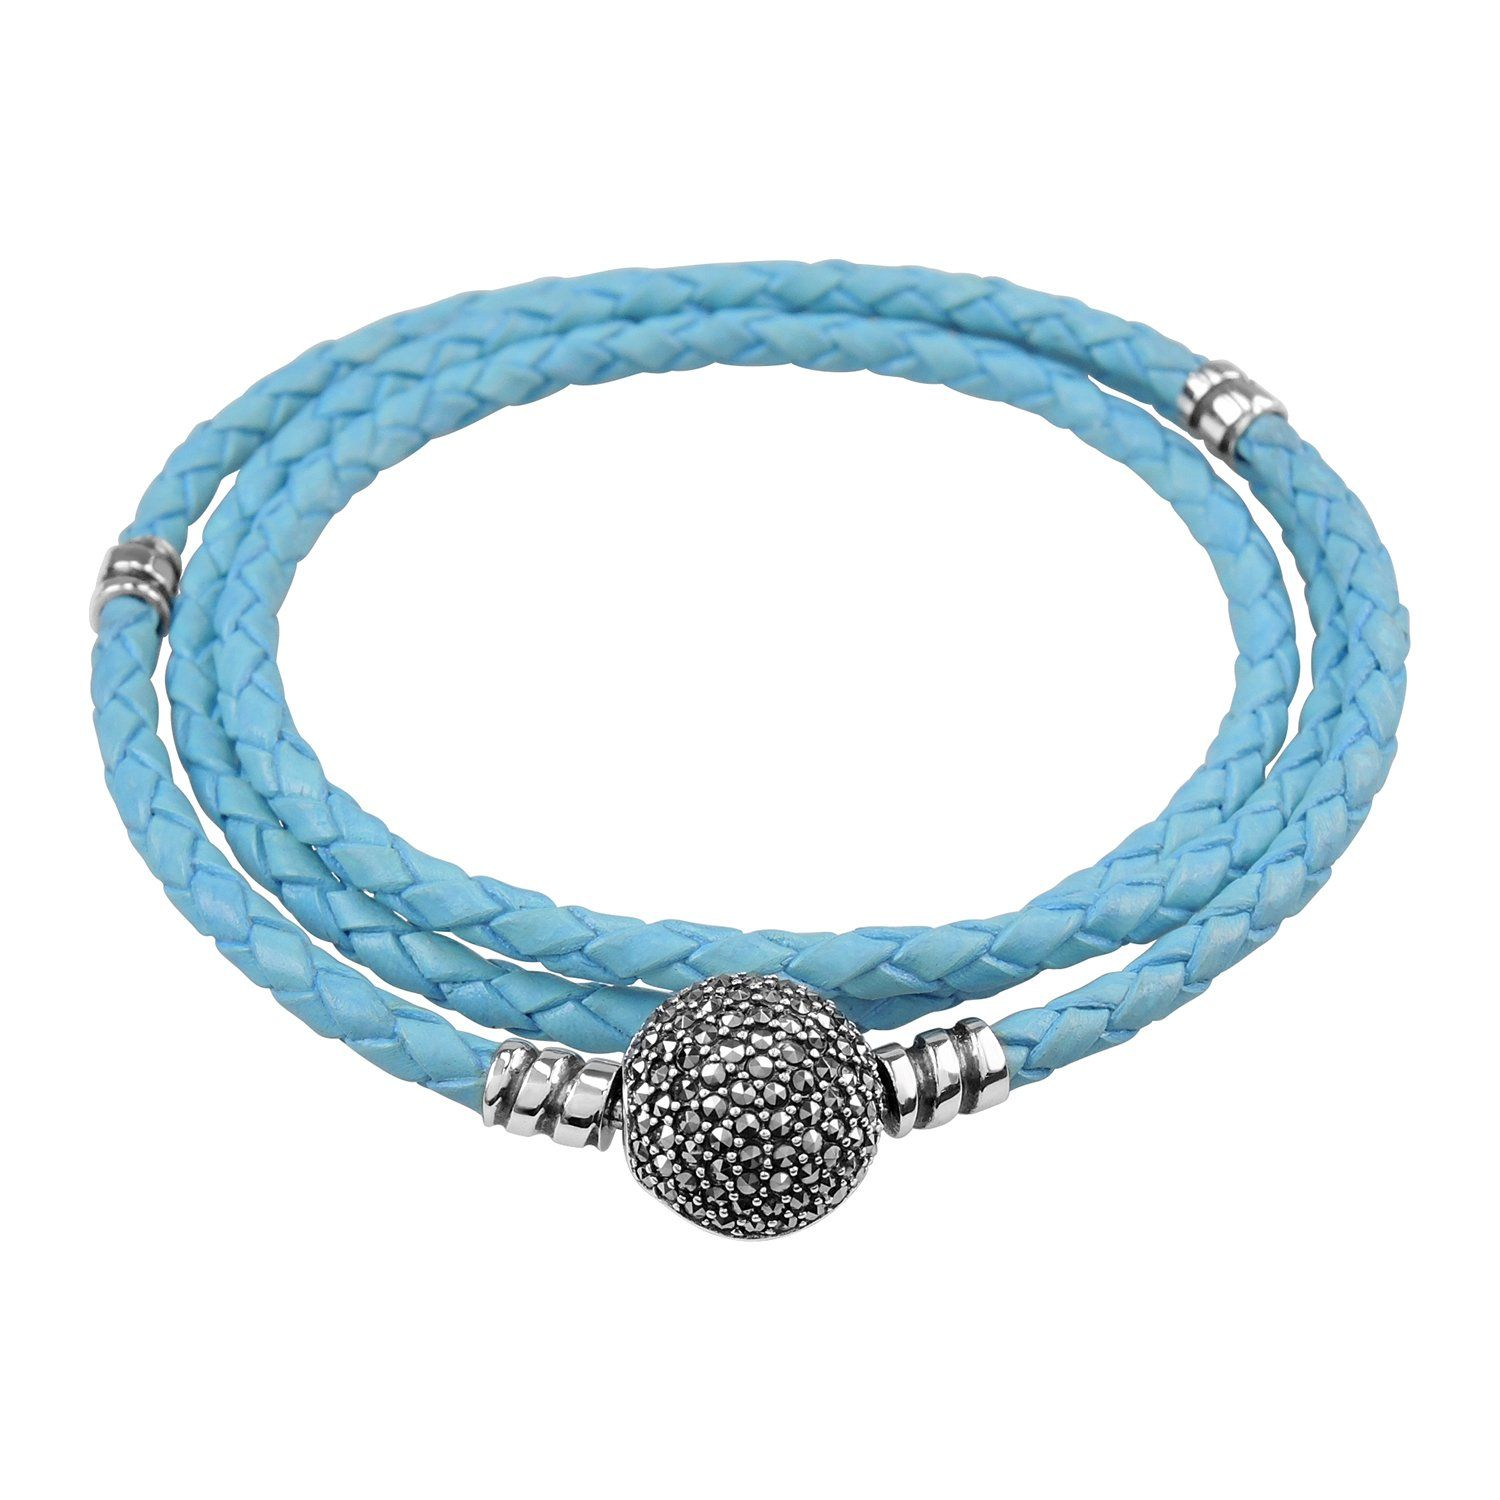 Aura by tjm braided triple leather bracelet with sterling silver